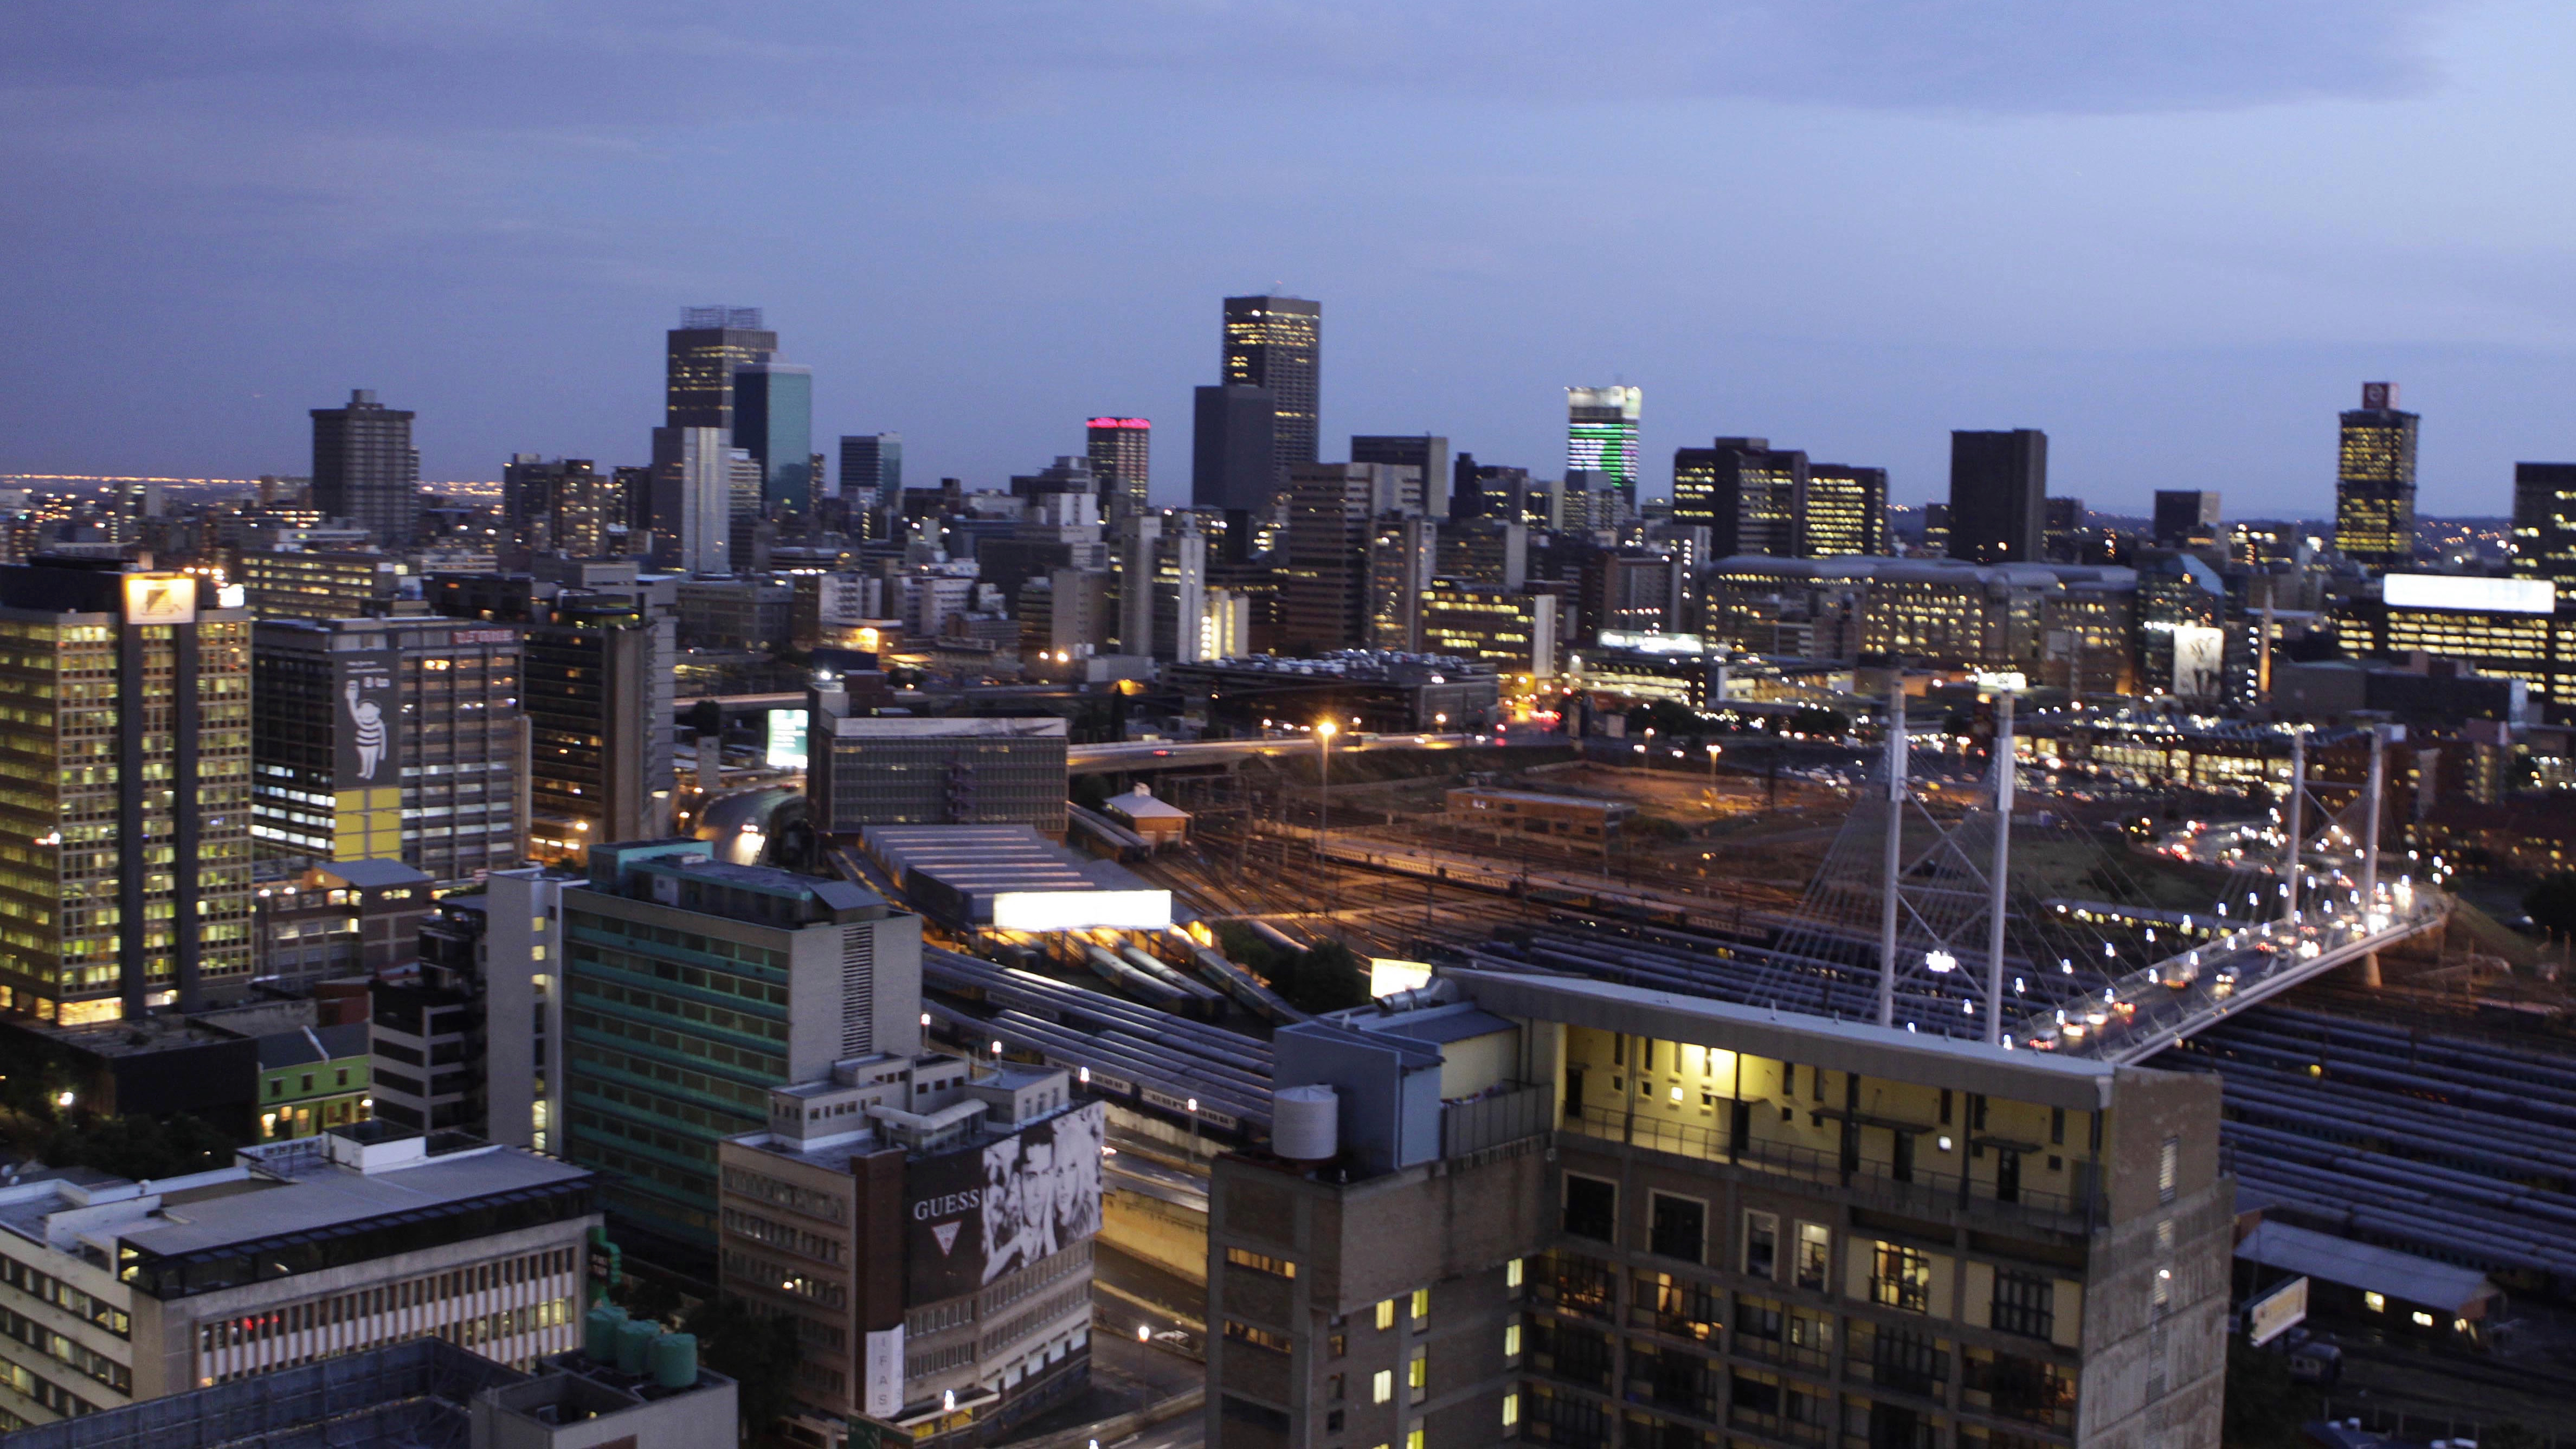 This photo taken Friday, Nov. 18, 2011 shows the city lights, after sunset, in Braamfontein, Johannesburg. Johannesburg dates its beginnings to the discovery of gold in 1886. Its downtown, where skyscrapers tower over deep mines, was abandoned by business in recent decades, and squatters turned the office towers into high-rise slums. But now, as the city celebrates its 125th birthday, creative South Africans are seeing gold in warehouses and cheap office space, and they're revitalizing neighborhoods with galleries, museums, shops, studios, clubs and restaurants.   ( AP Photo/Denis Farrell)